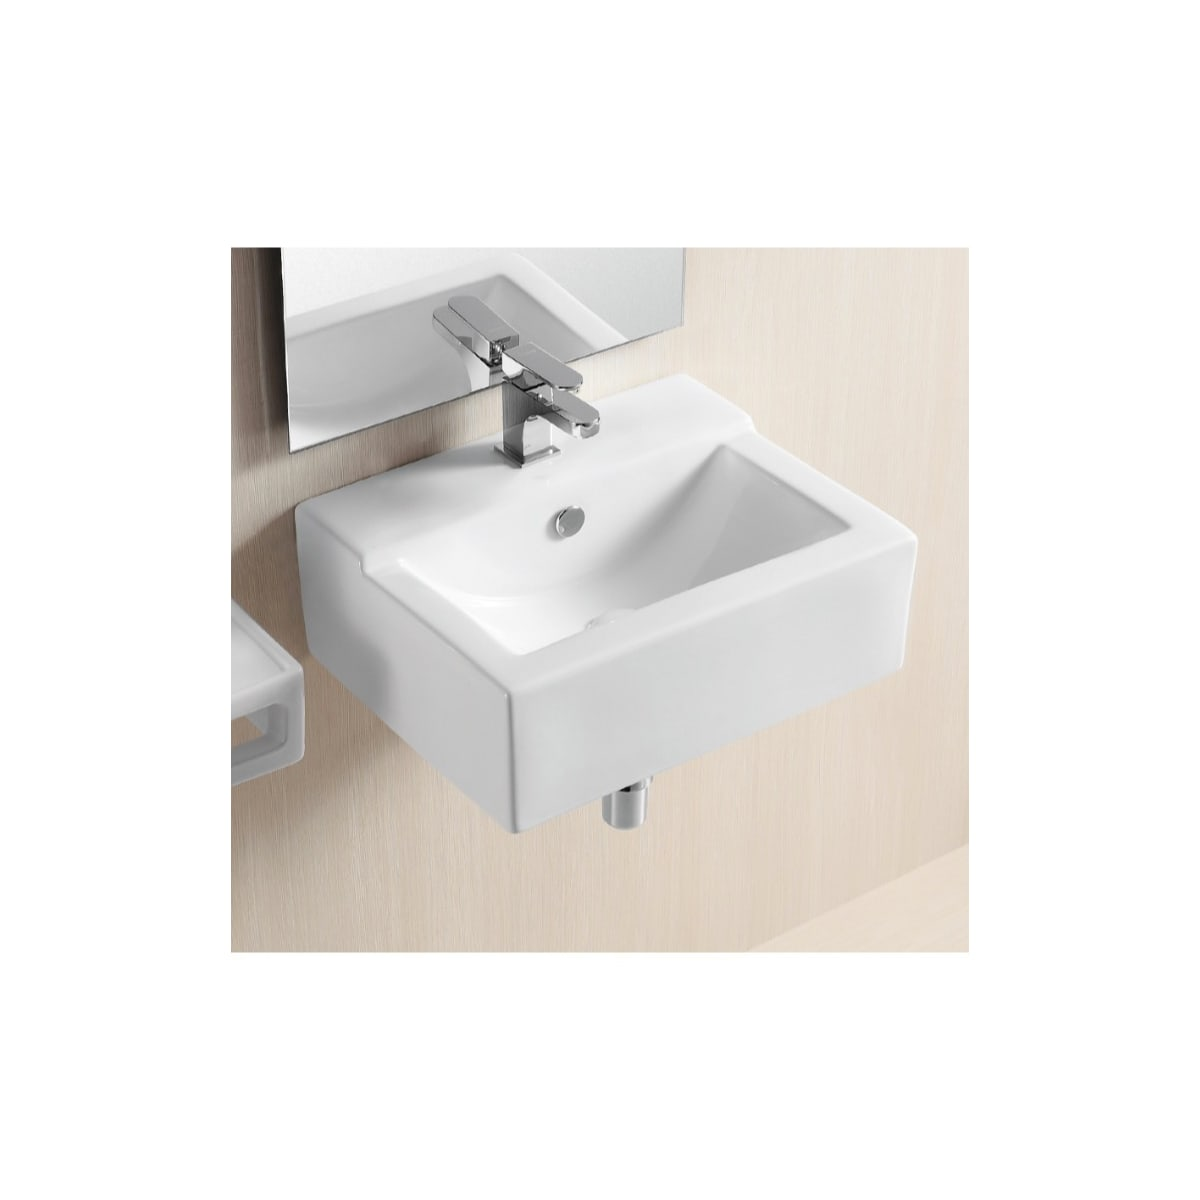 Nameeks Caracalla Ca4103c One Hole White Caracalla 18 9 10 Ceramic Wall Mounted Bathroom Sink With 1 Faucet Hole And Overflow Faucet Com